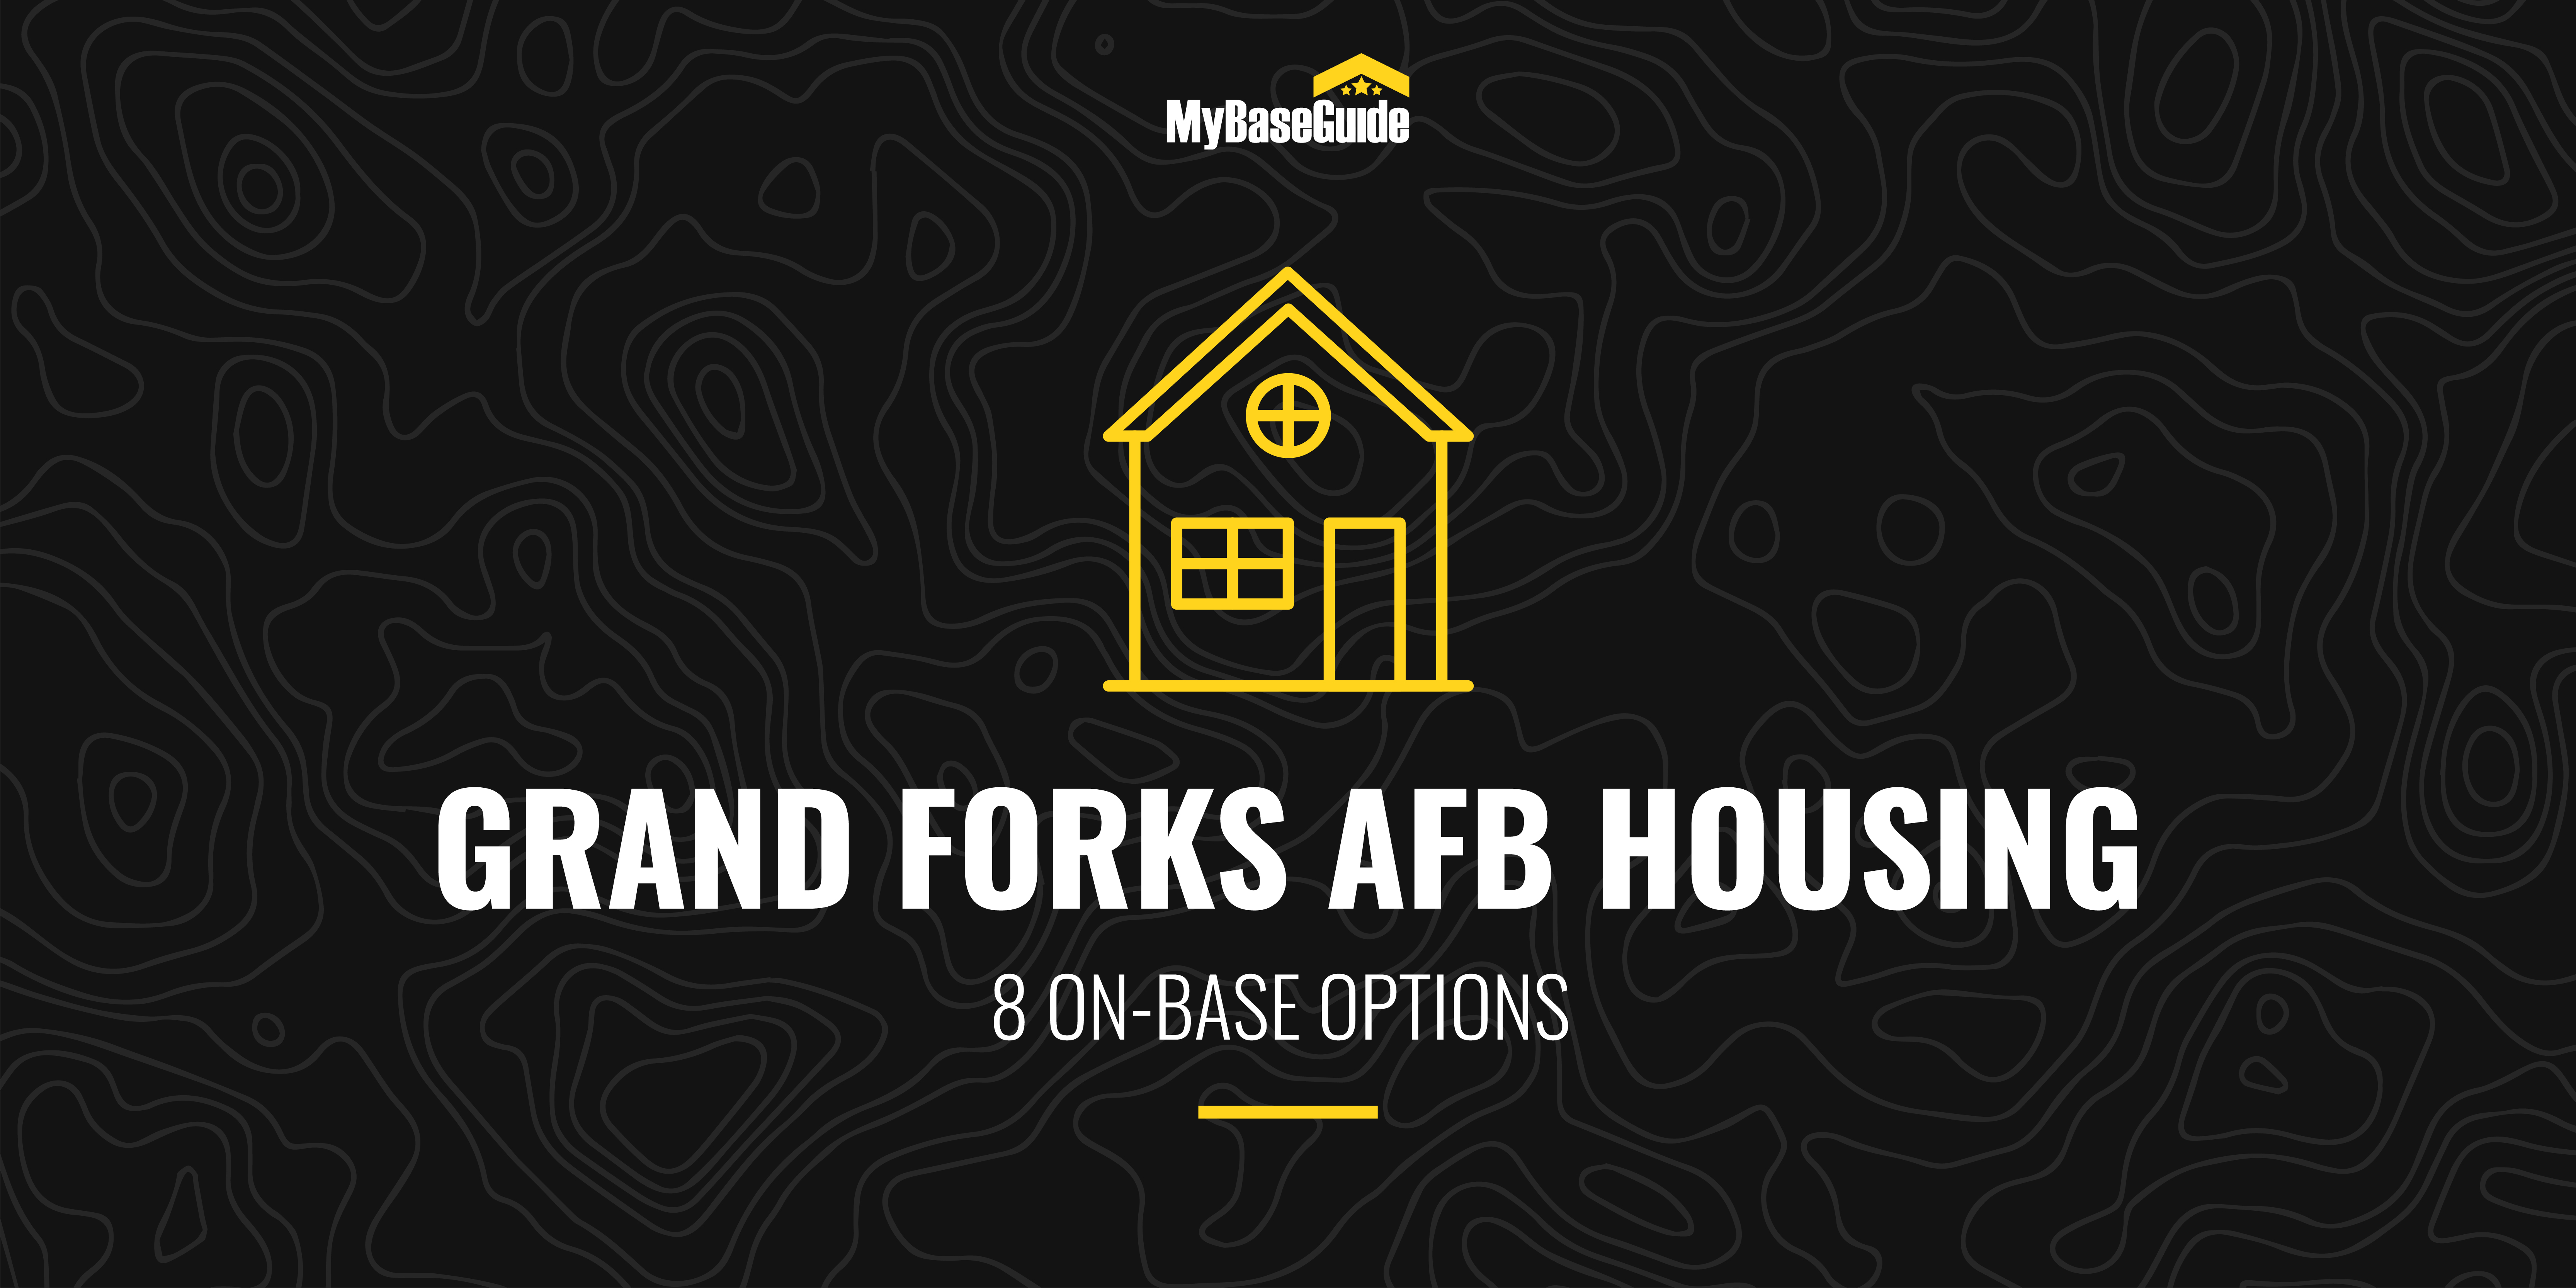 Grand Forks AFB Housing: 8 On-Base Options